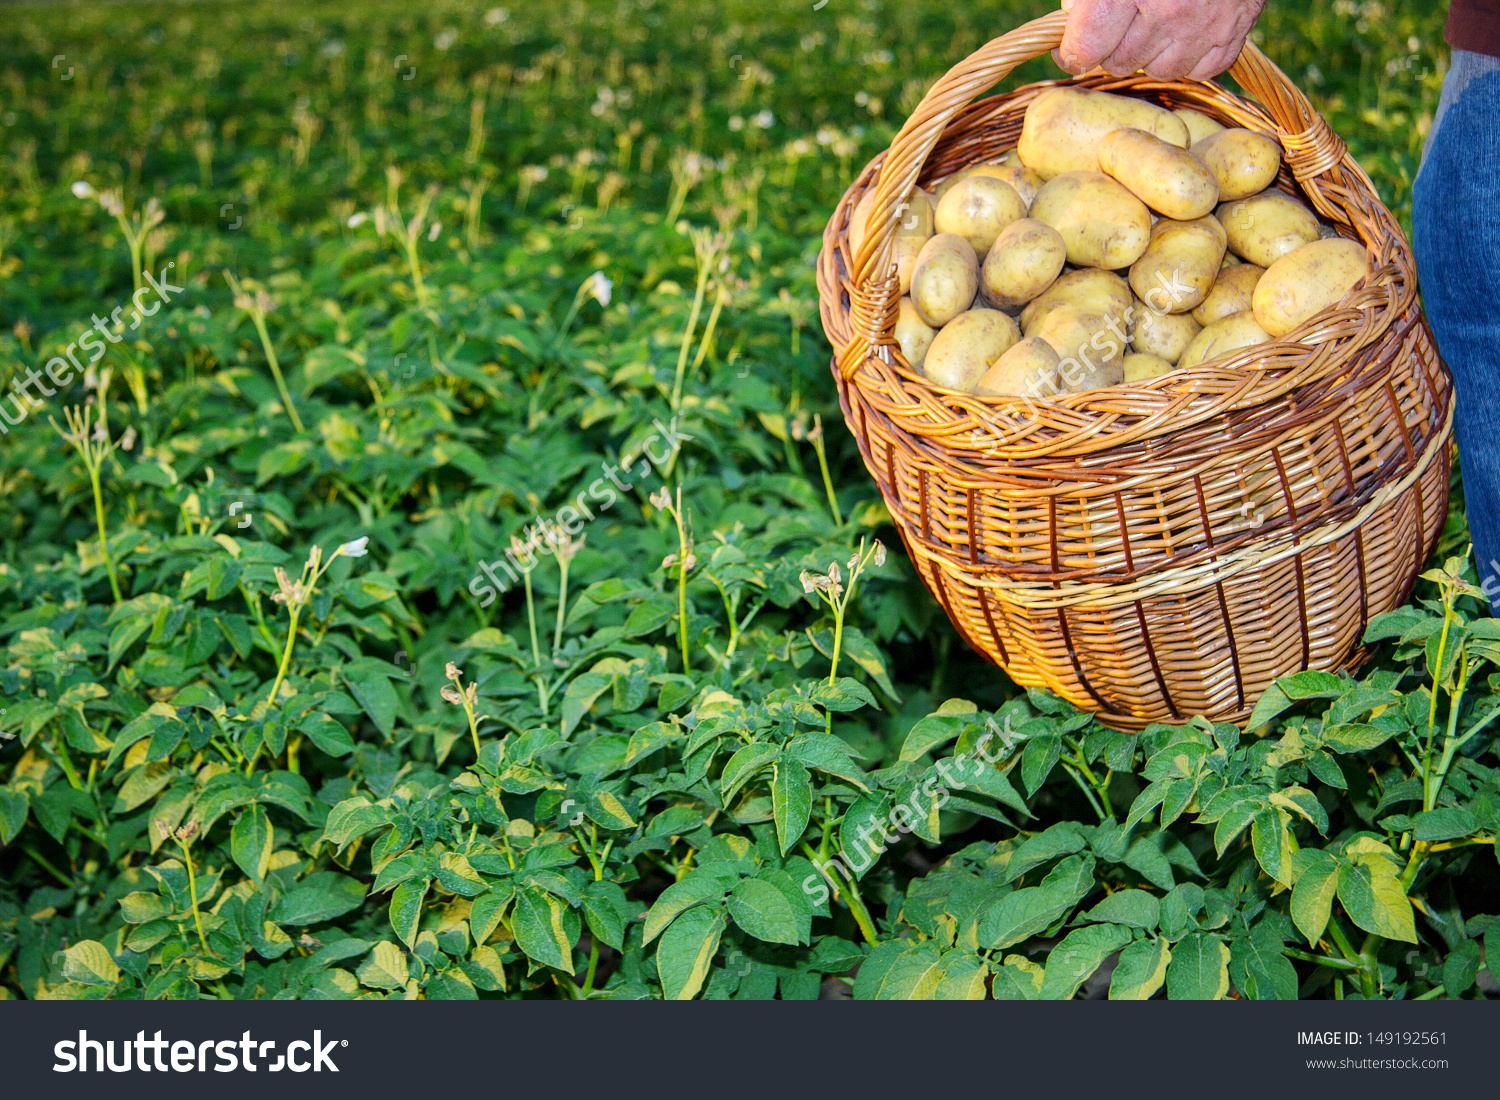 Basket Full Potatoes Potato Field Stock Photo 149192561.